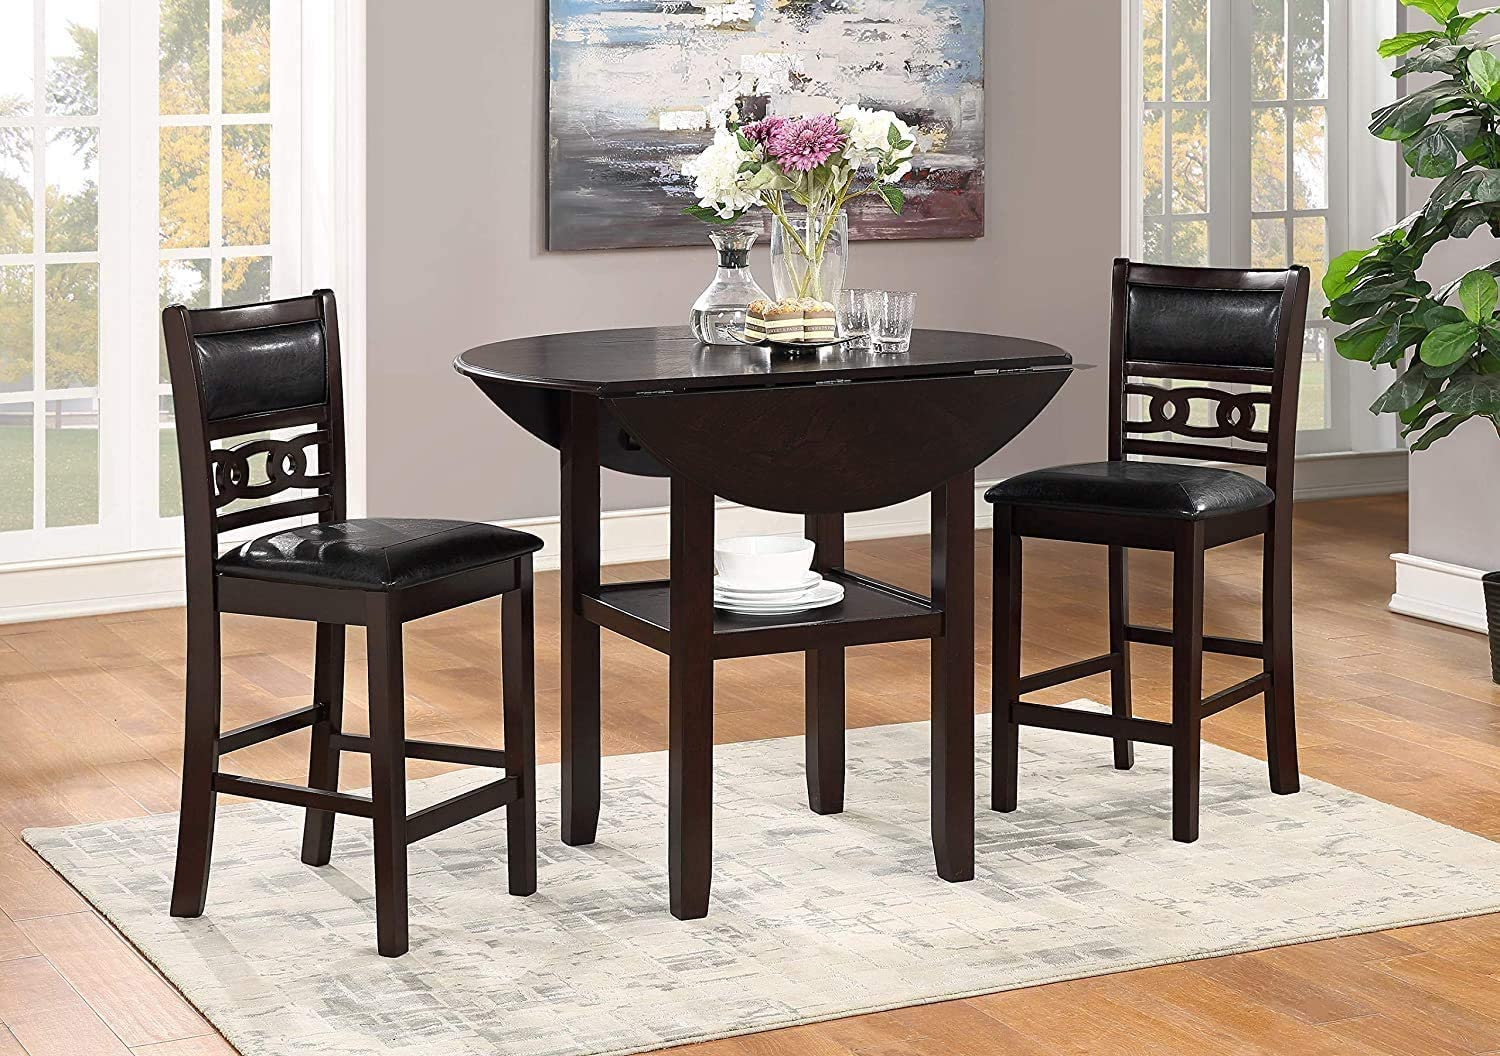 Buy New Classic FURNITURE Gia Drop Leaf Counter Table with Two ...